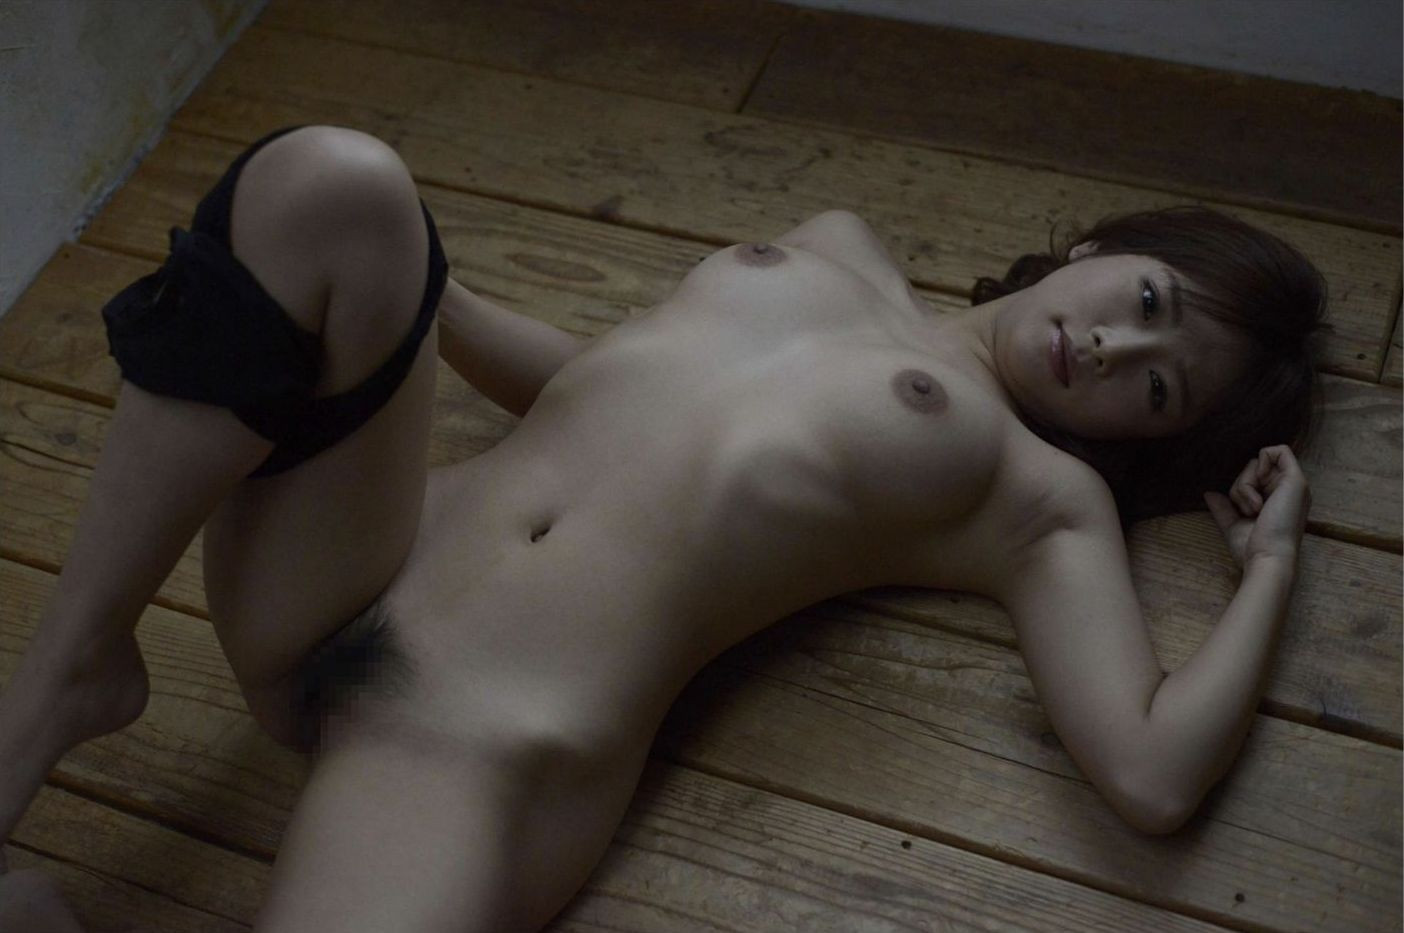 SOFT ON DEMAND GRAVURE COLLECTION 紗倉まな03 photo 046